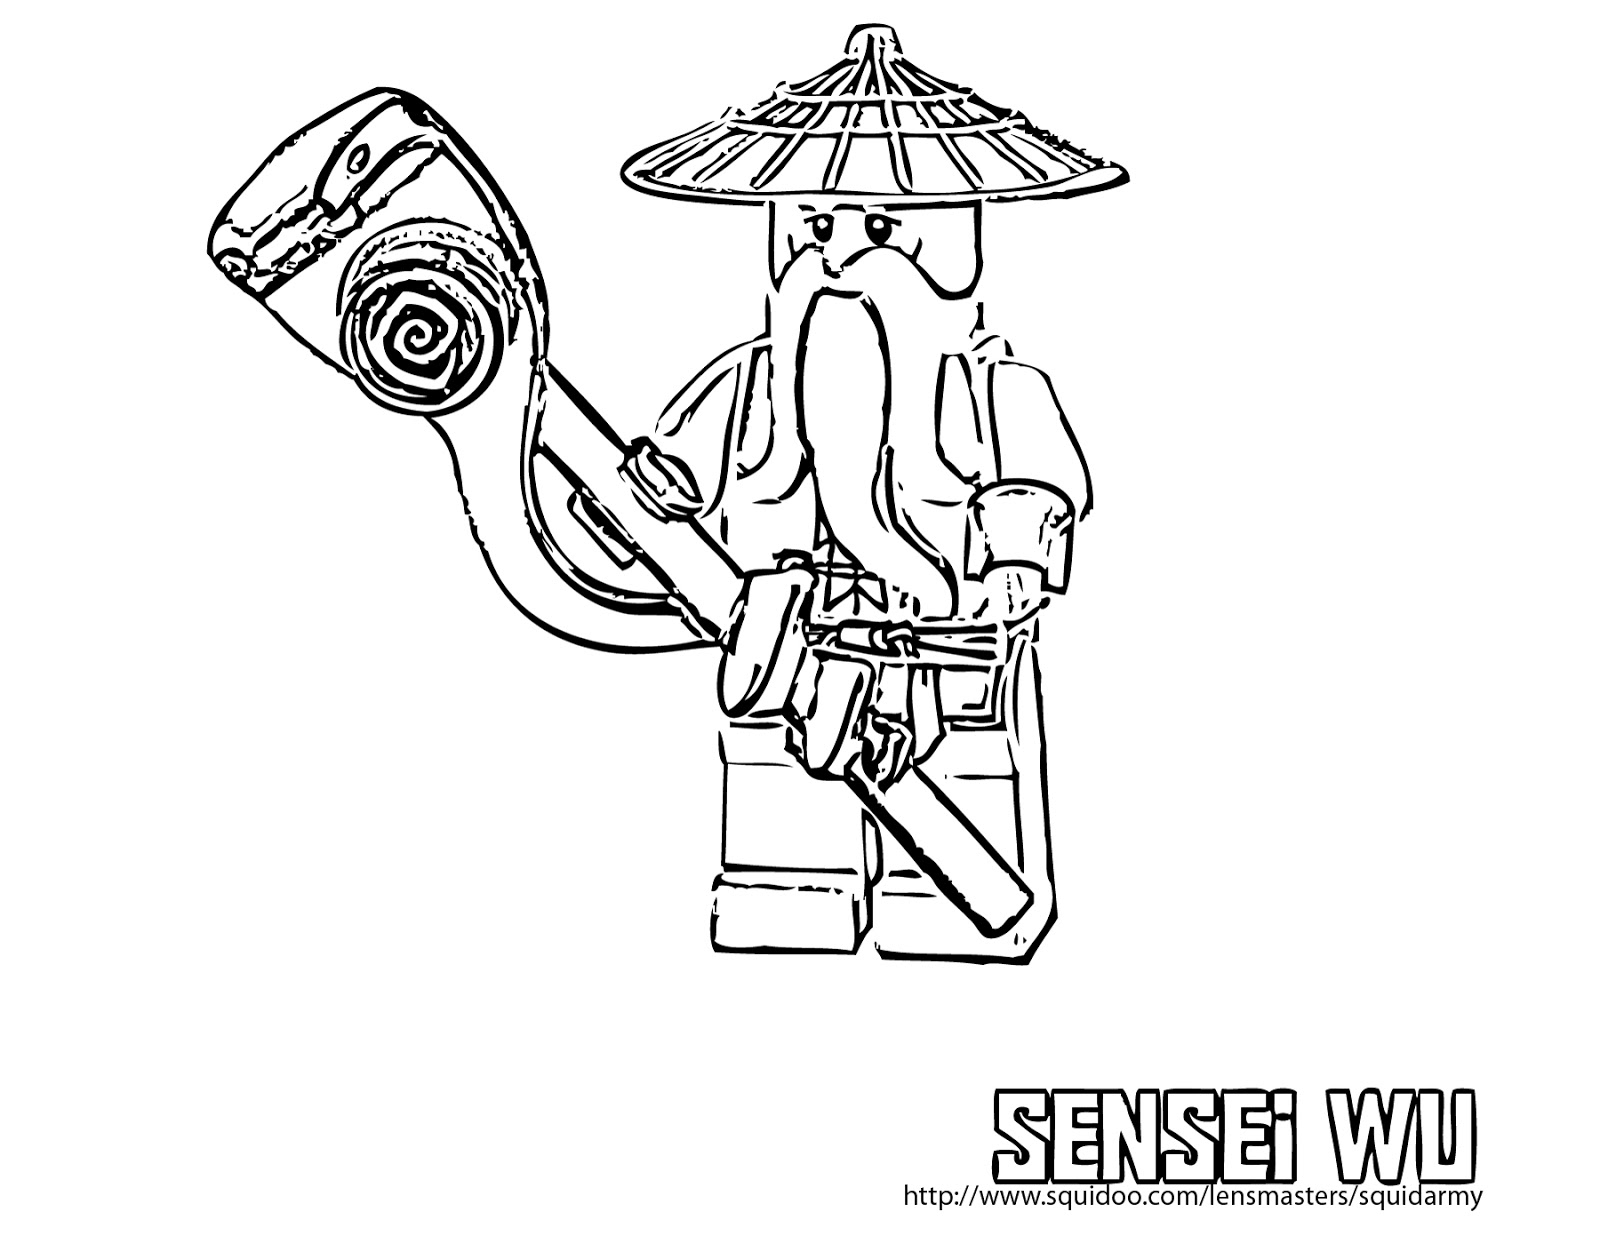 Ninjago Coloring Pages http://printablecolouringpages.co.uk/?s=o+go+ninjago